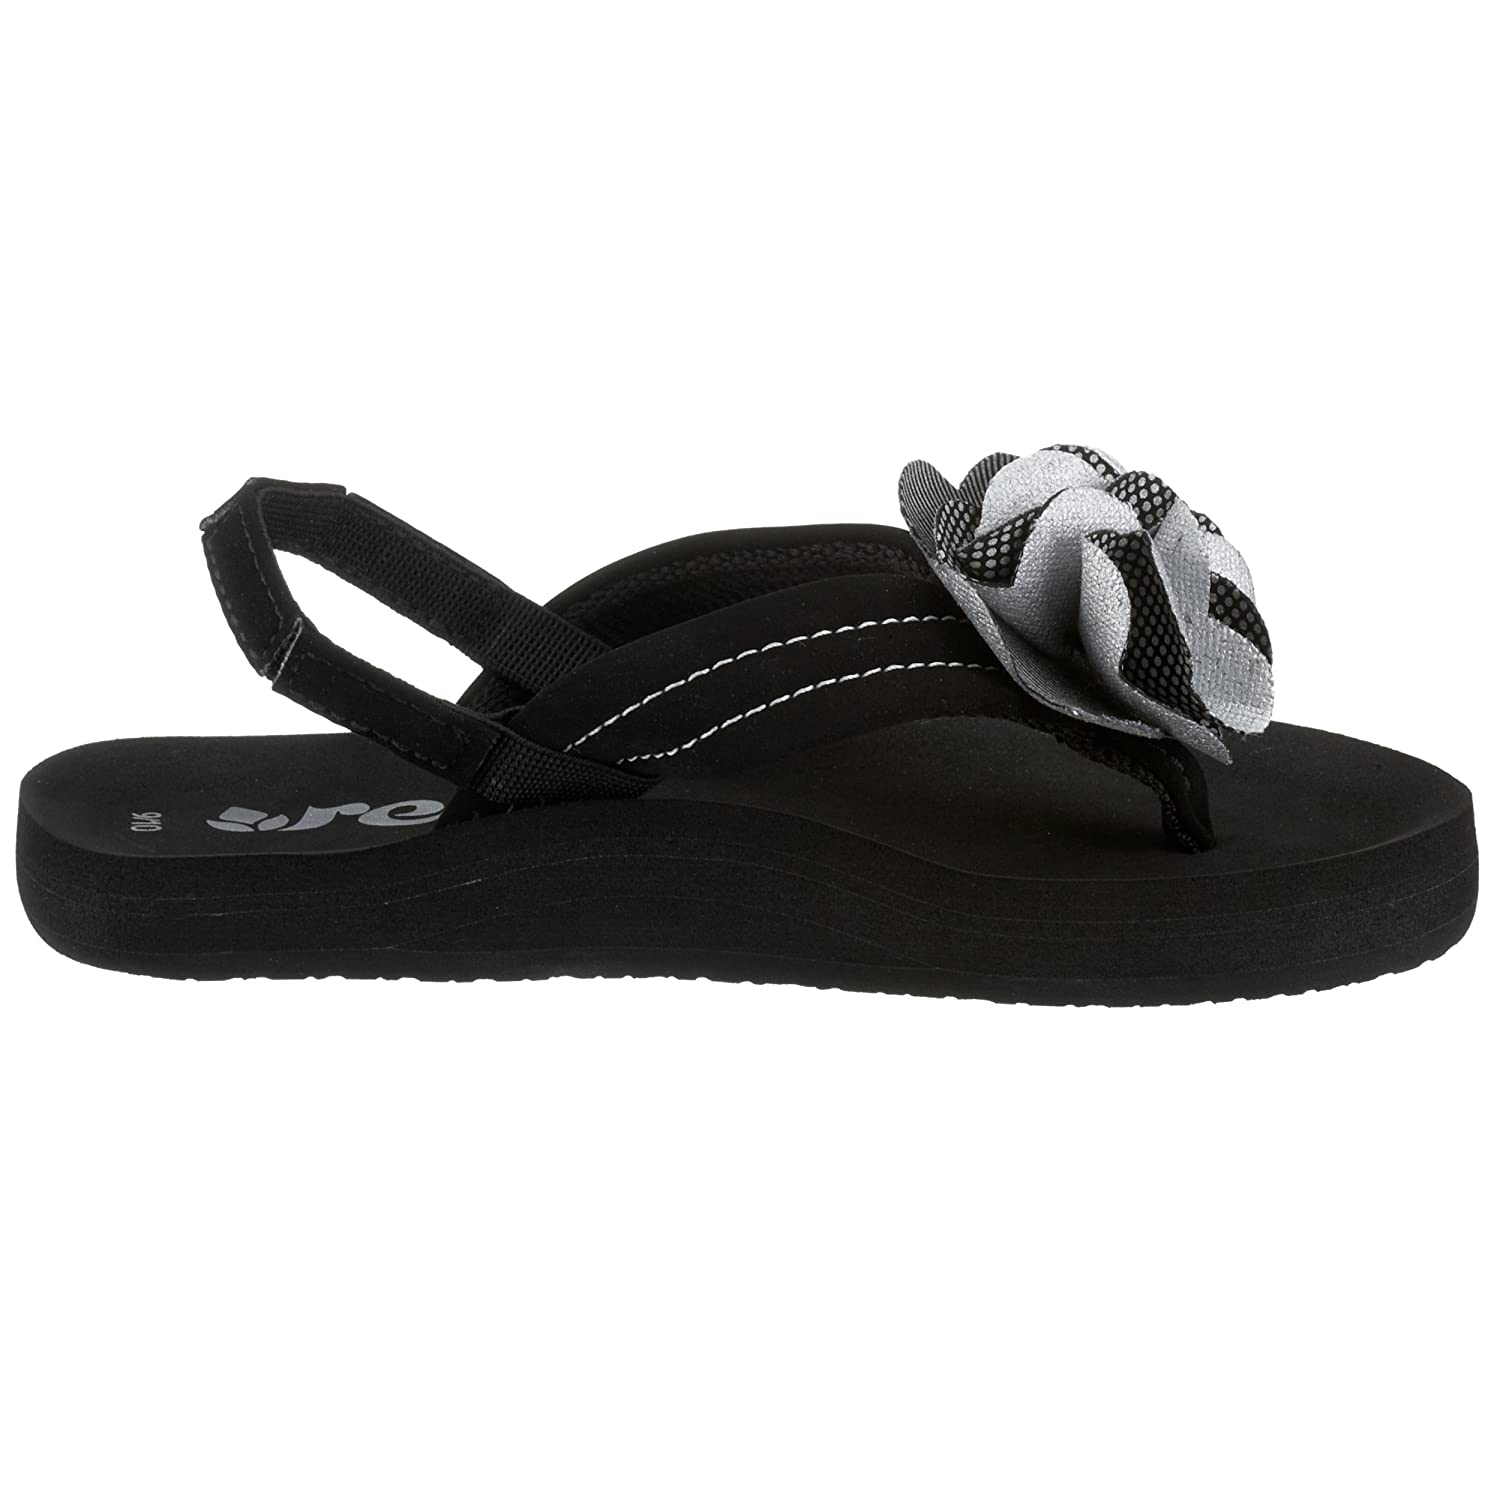 36d068d1d Reef Baby Girls BABY BLOOM BLACK SILVER 9SR2129-BLS-19 20 2.5 Child UK   Amazon.co.uk  Shoes   Bags